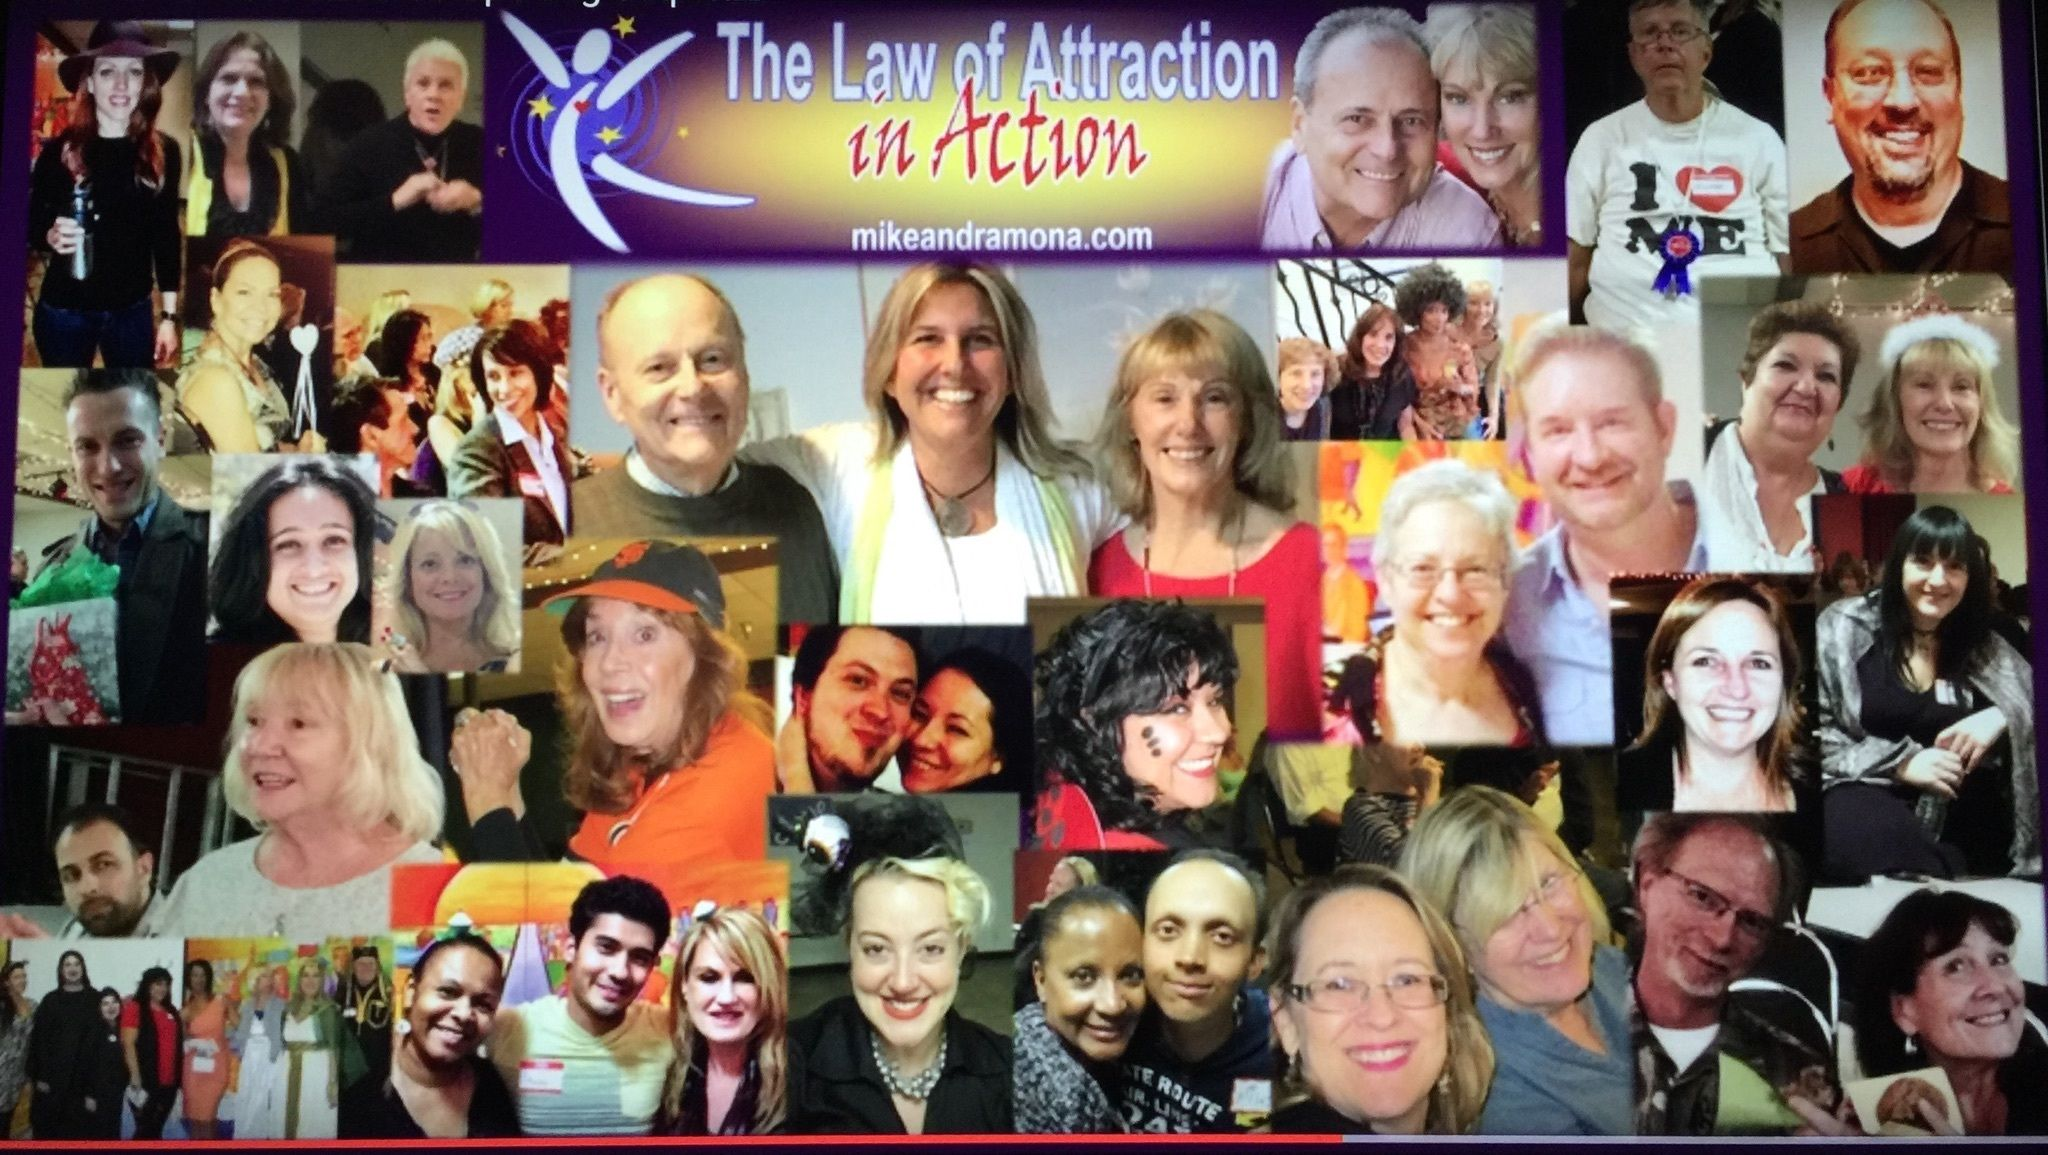 Burbank Law of Attraction Extension Group